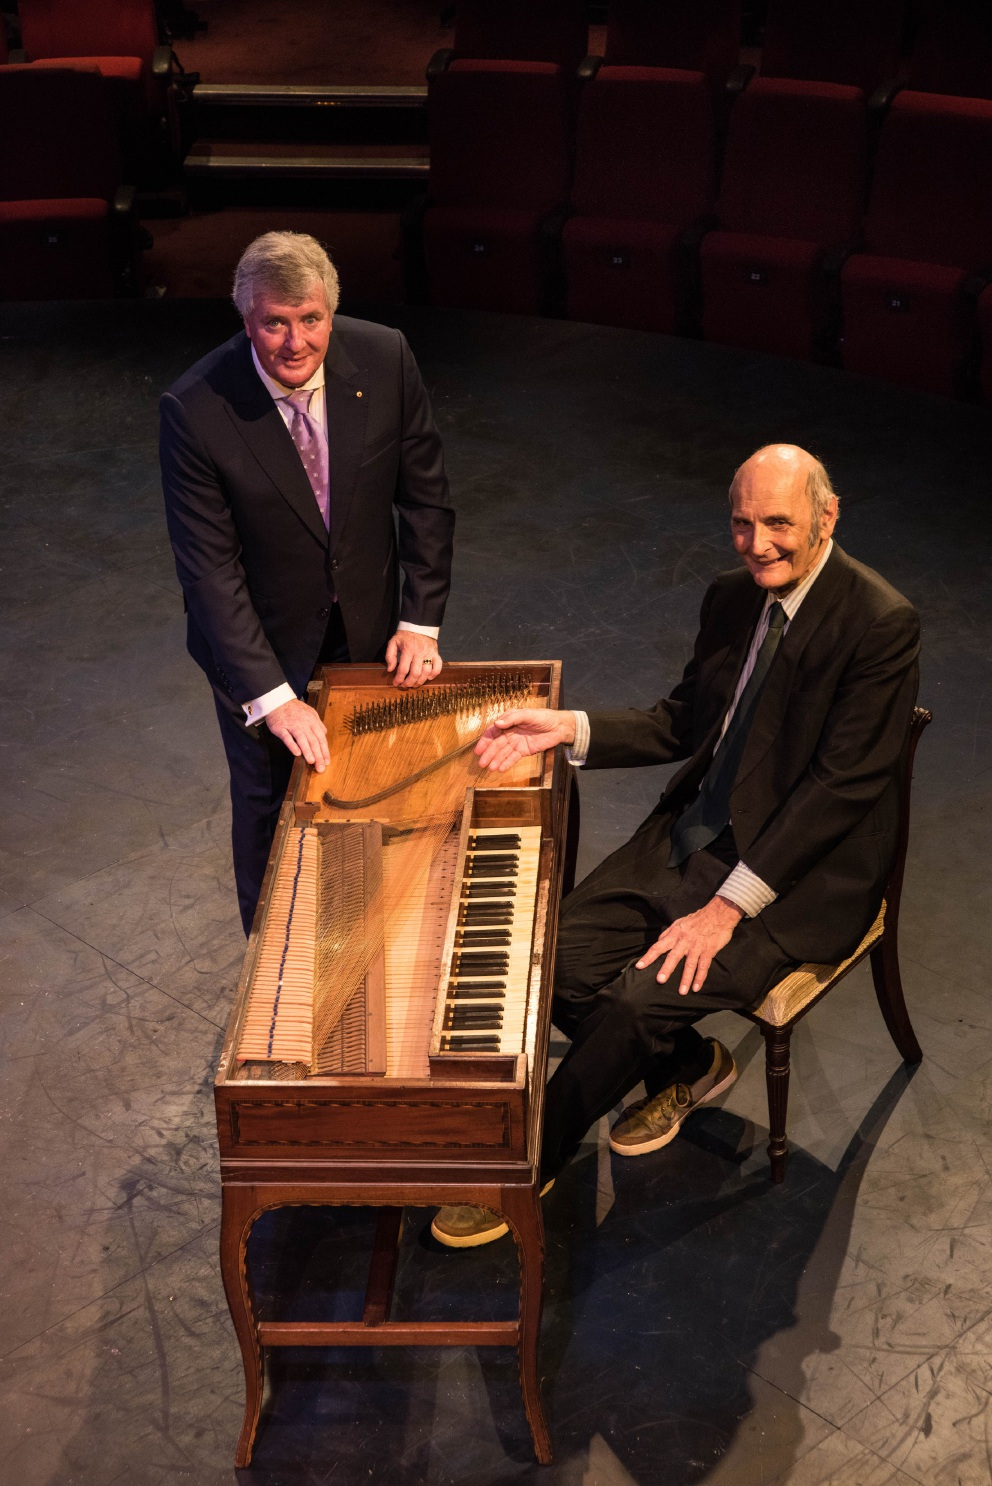 Professor Geoffrey Lancaster (left) and Stewart Symonds with the First Fleet piano he donated to ECU.